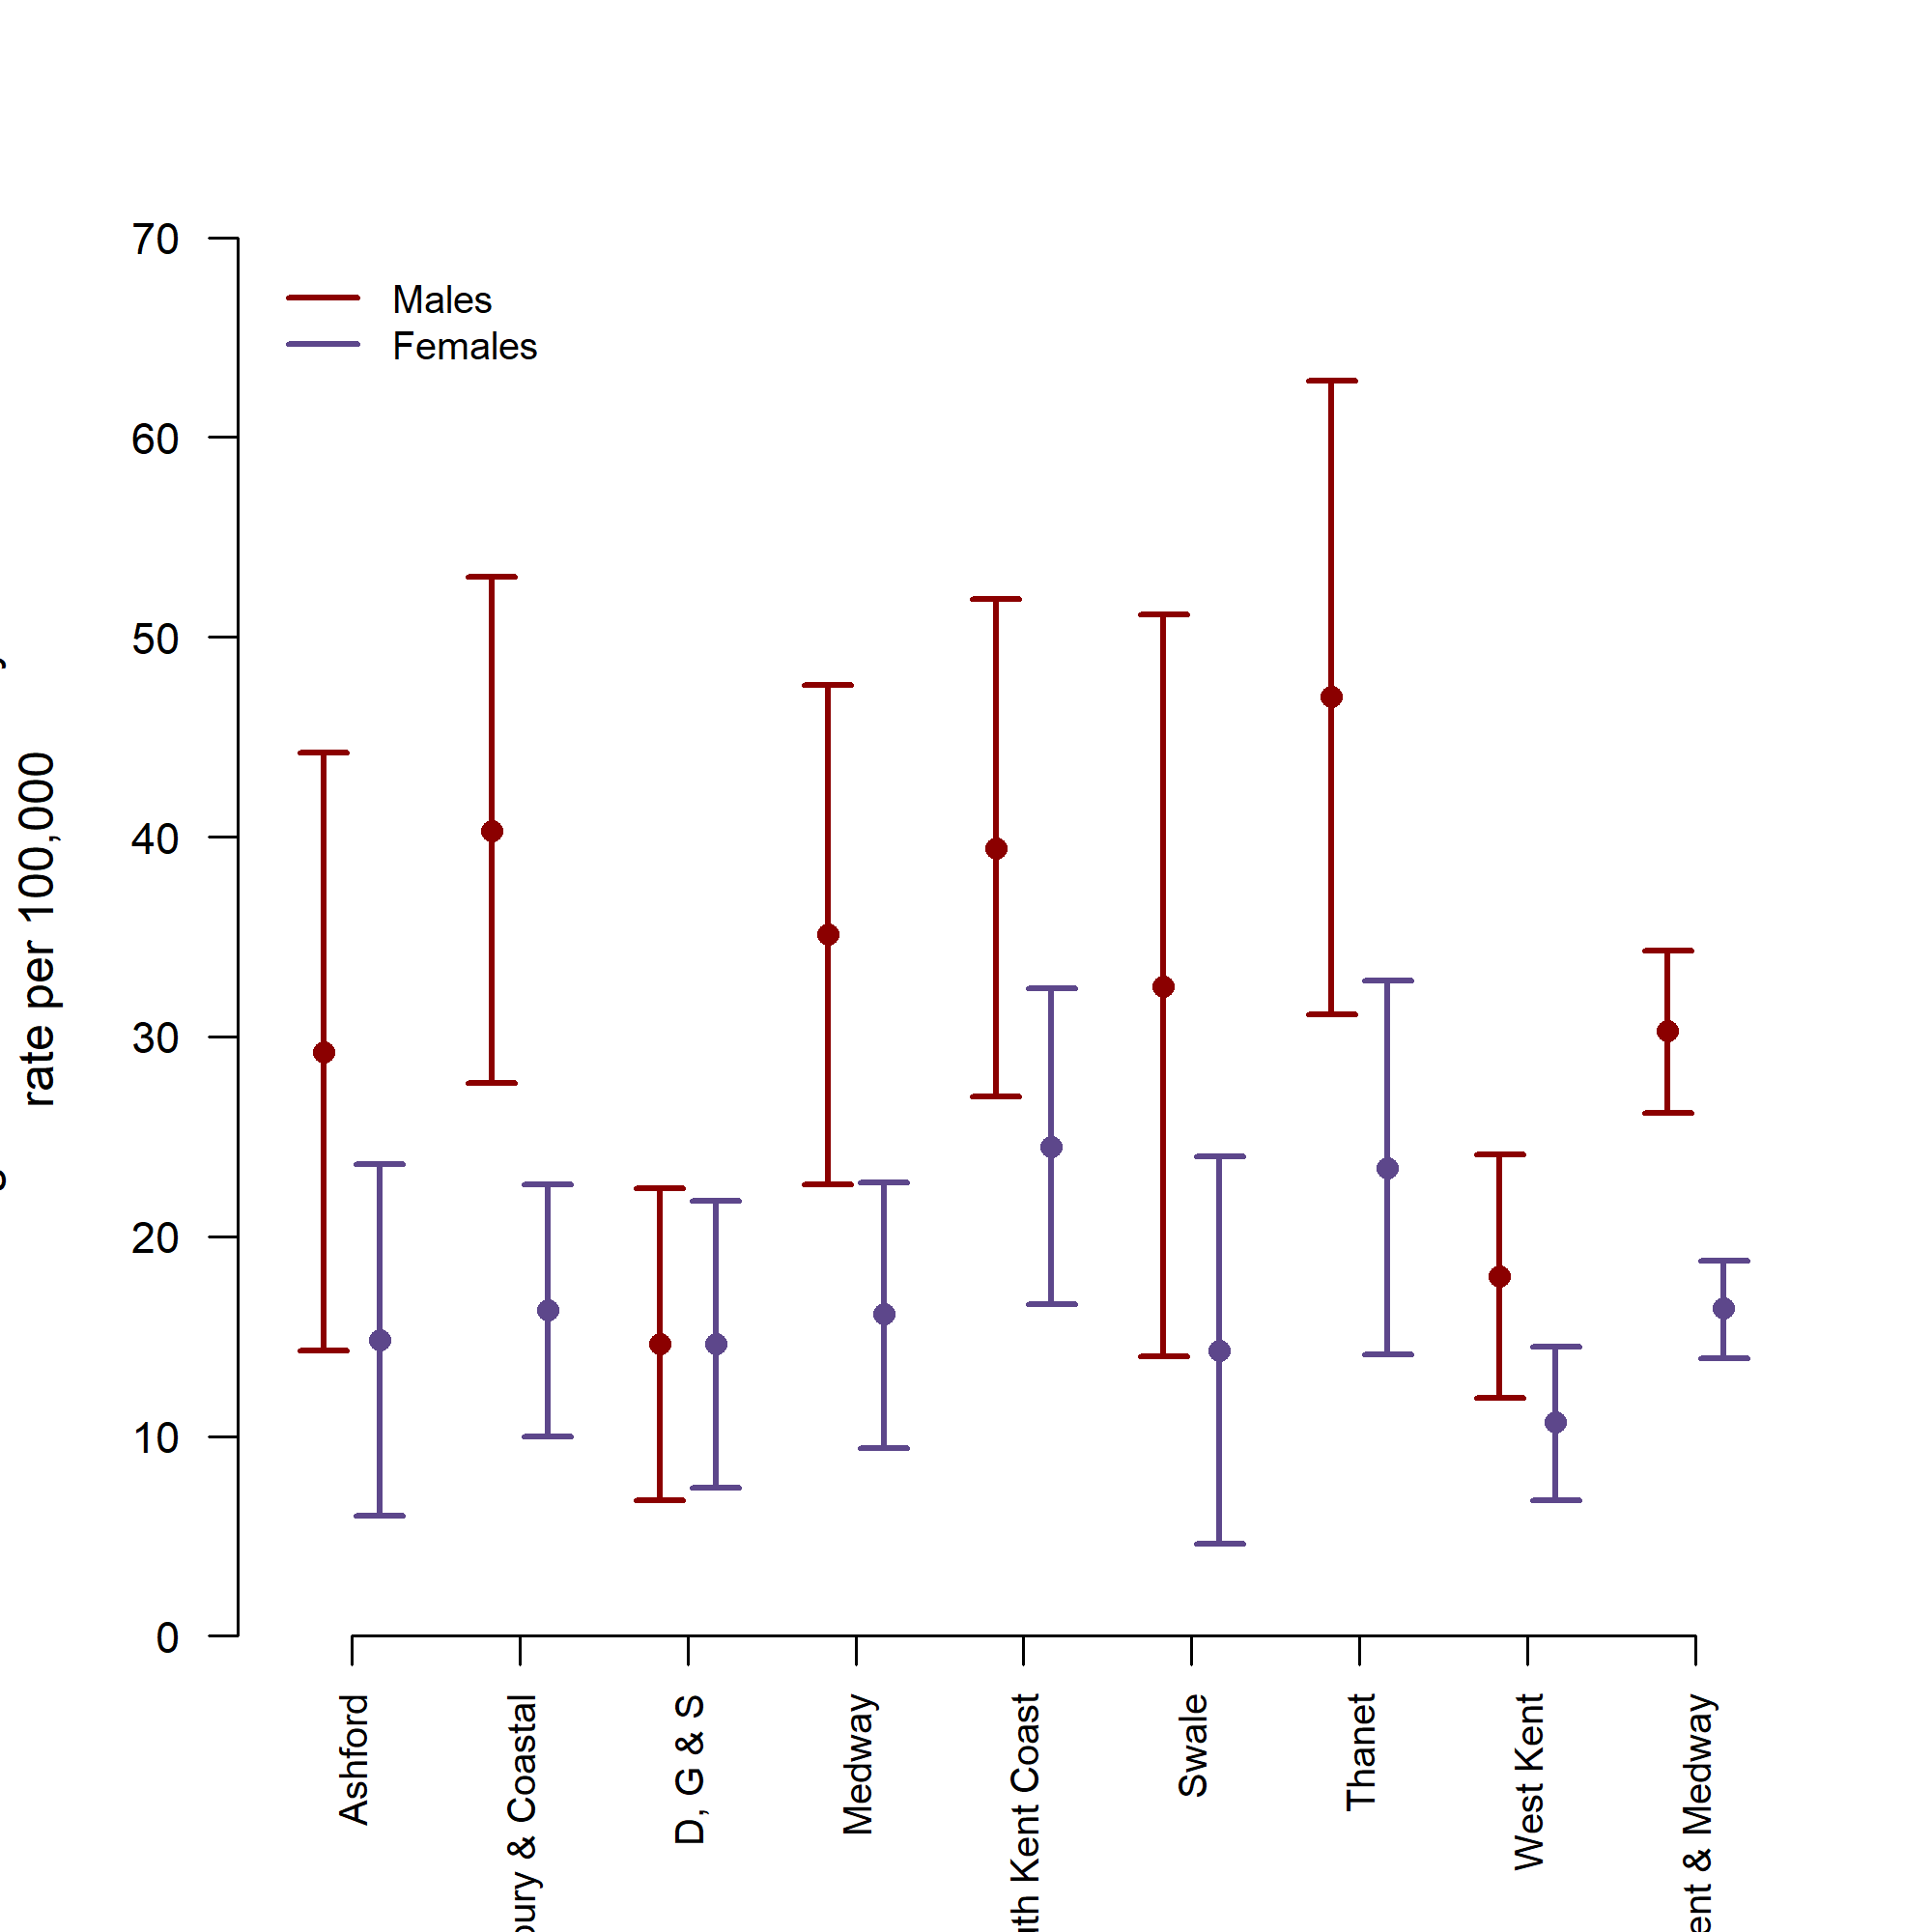 Figure 6: Mortality rates from falls, Kent & Medway CCGs, 2008--2012, males and females aged over 65 years (D,G and S = Dartford, Gravesham and Swanley) Source: Public Health Mortality File, PCIS populations.